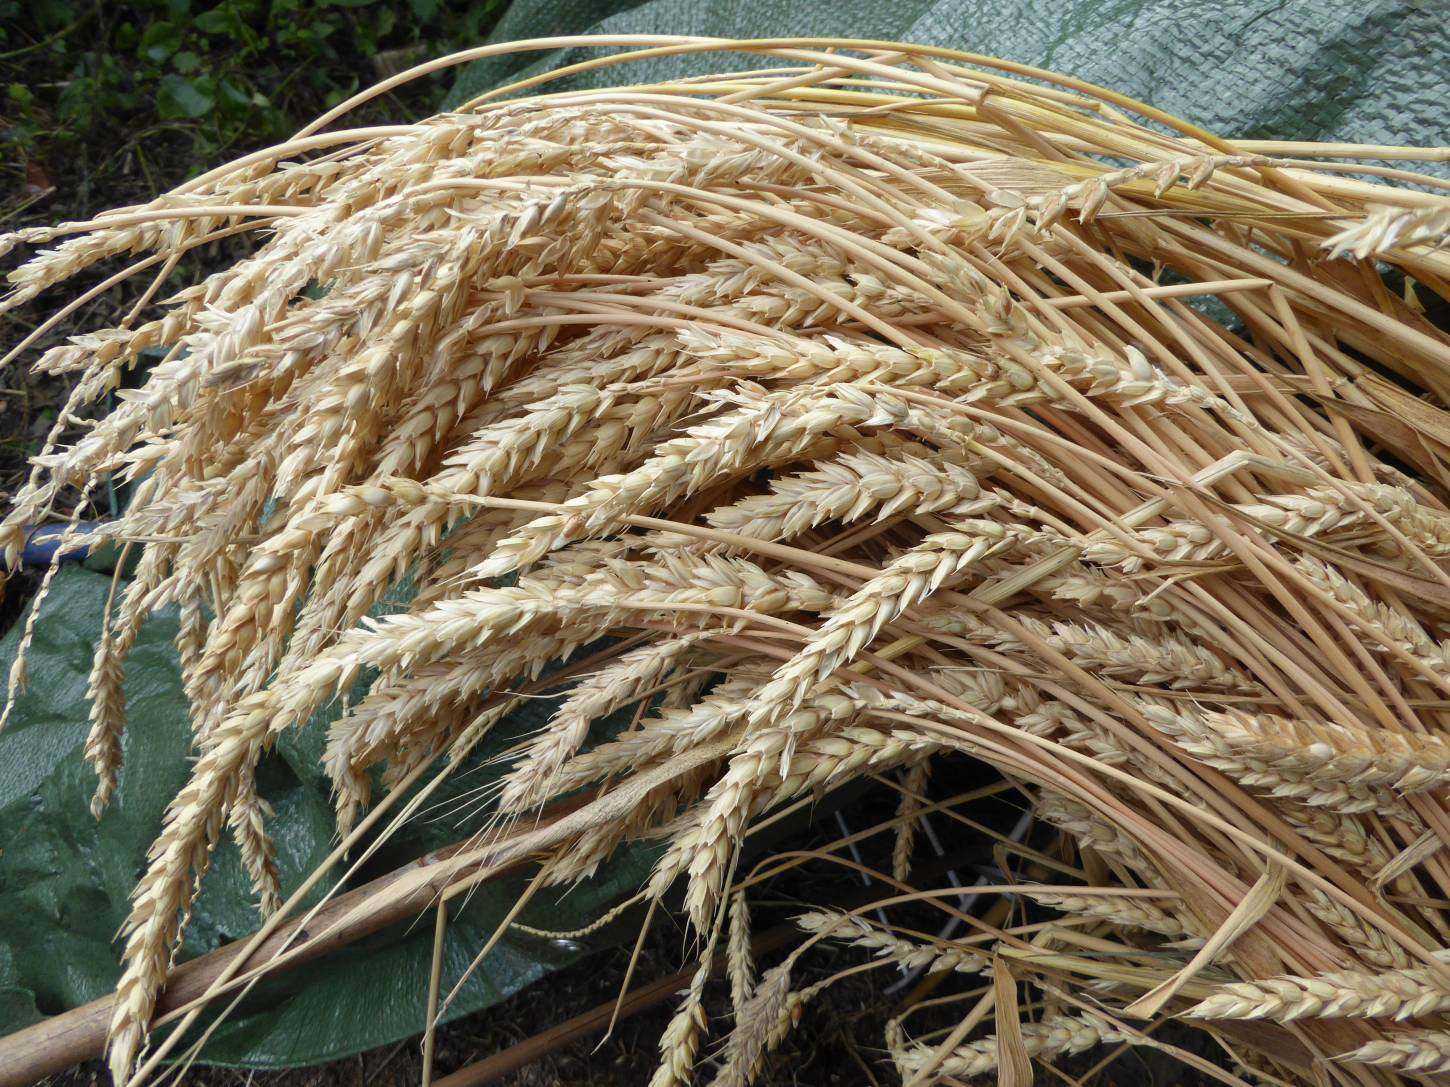 threshing out allotment grown <a href='http://www.wheat-gateway.org.uk/hub.php?ID=41' target='_blank'>Hen Gymro S72</a> - 3:17pm&nbsp;5<sup>th</sup>&nbsp;Aug.&nbsp;'17